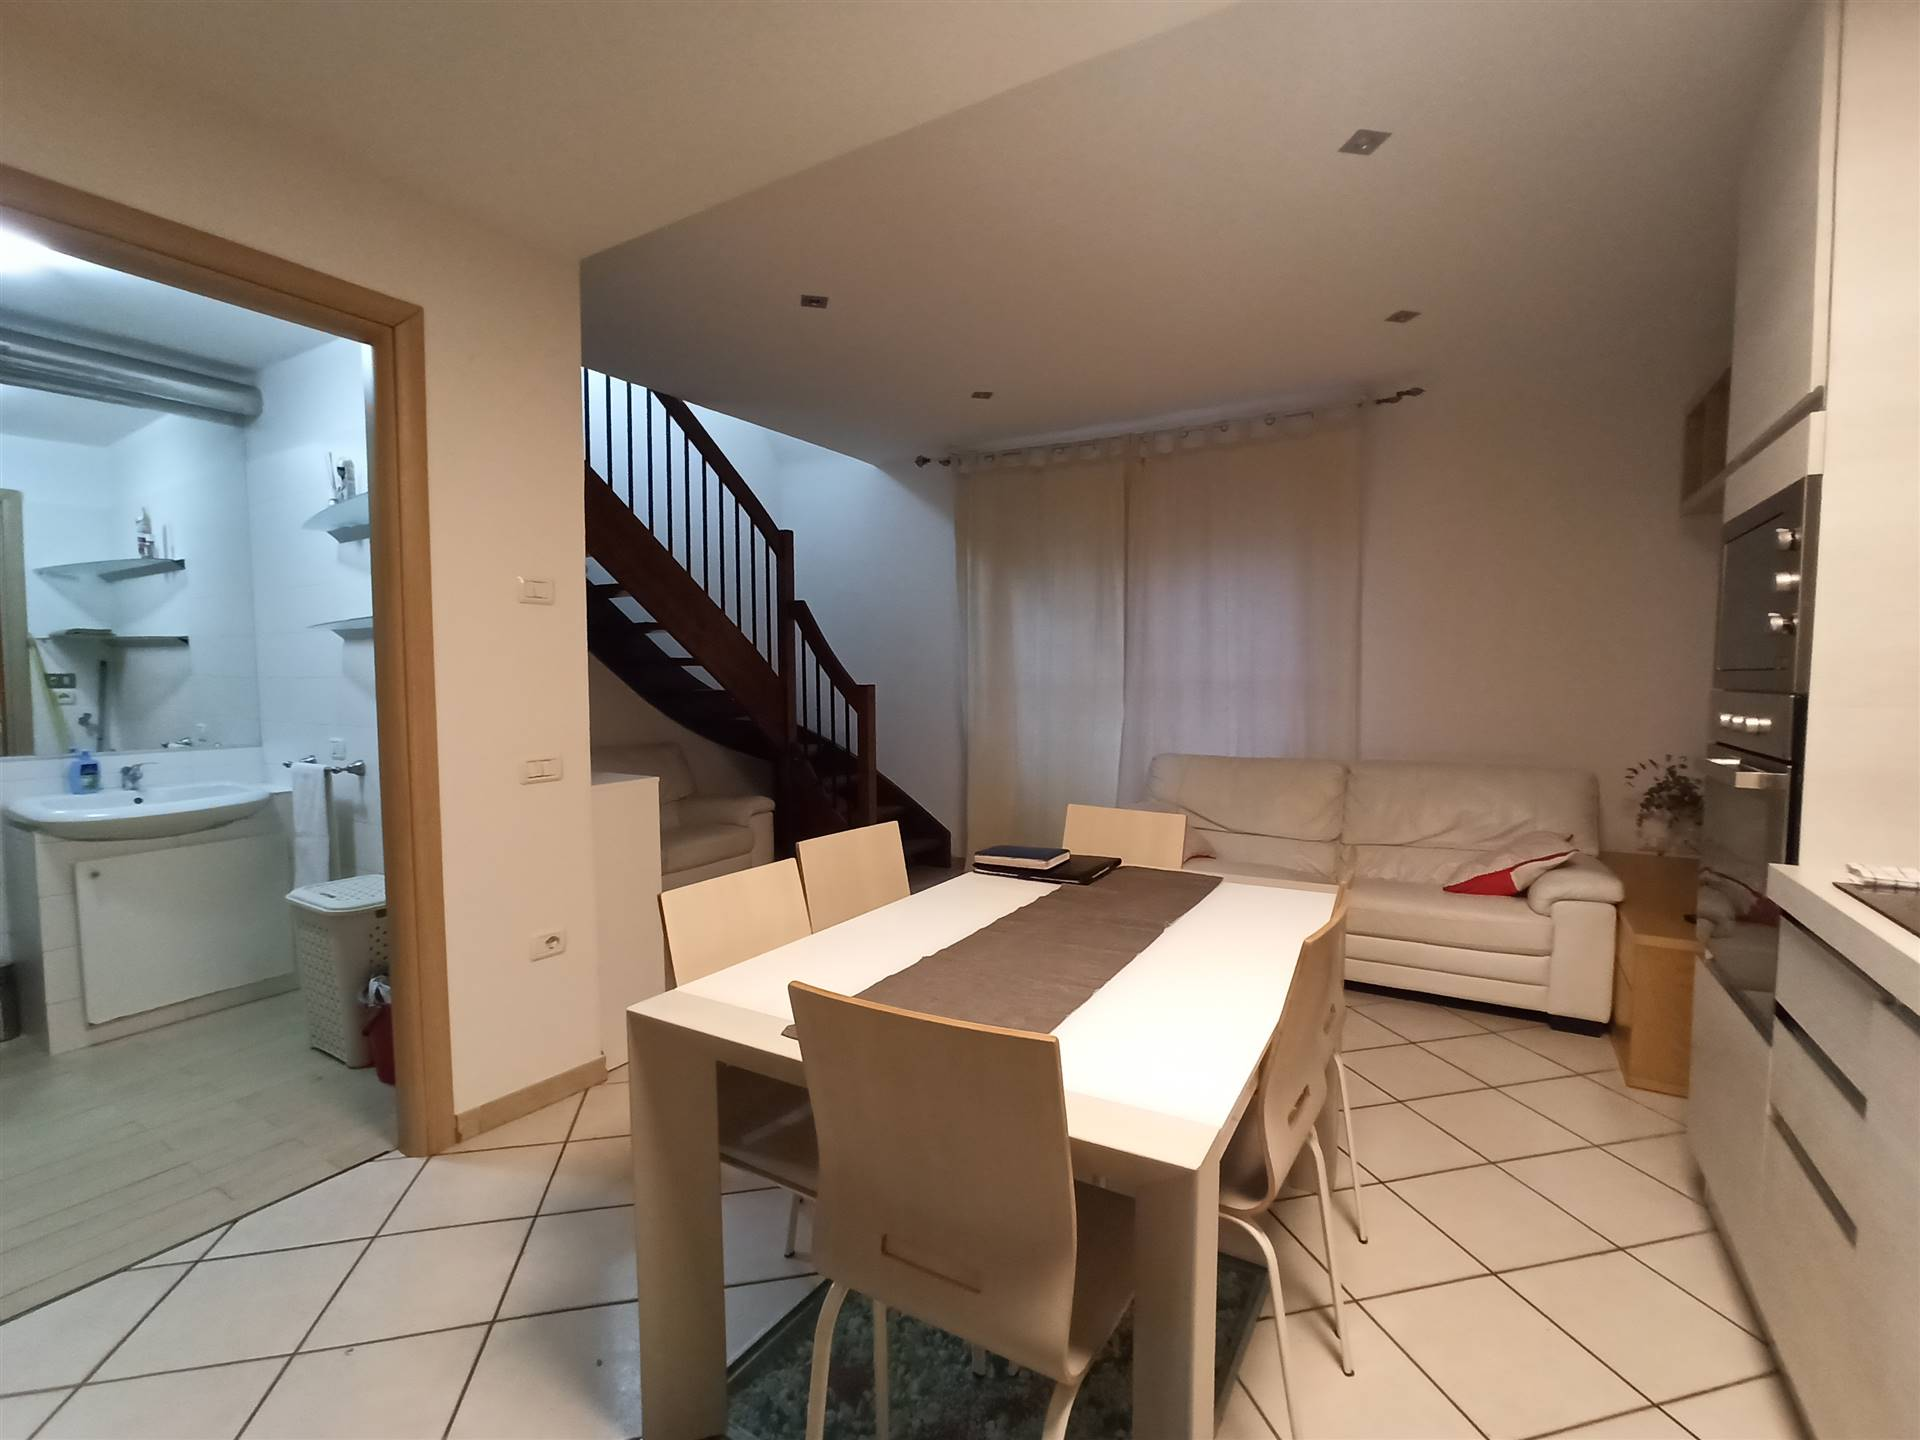 CAPALLE, CAMPI BISENZIO, Apartment for sale, Excellent Condition, Heating Non-existent, Energetic class: G, placed at 3° on 3, composed by: 2 Rooms,